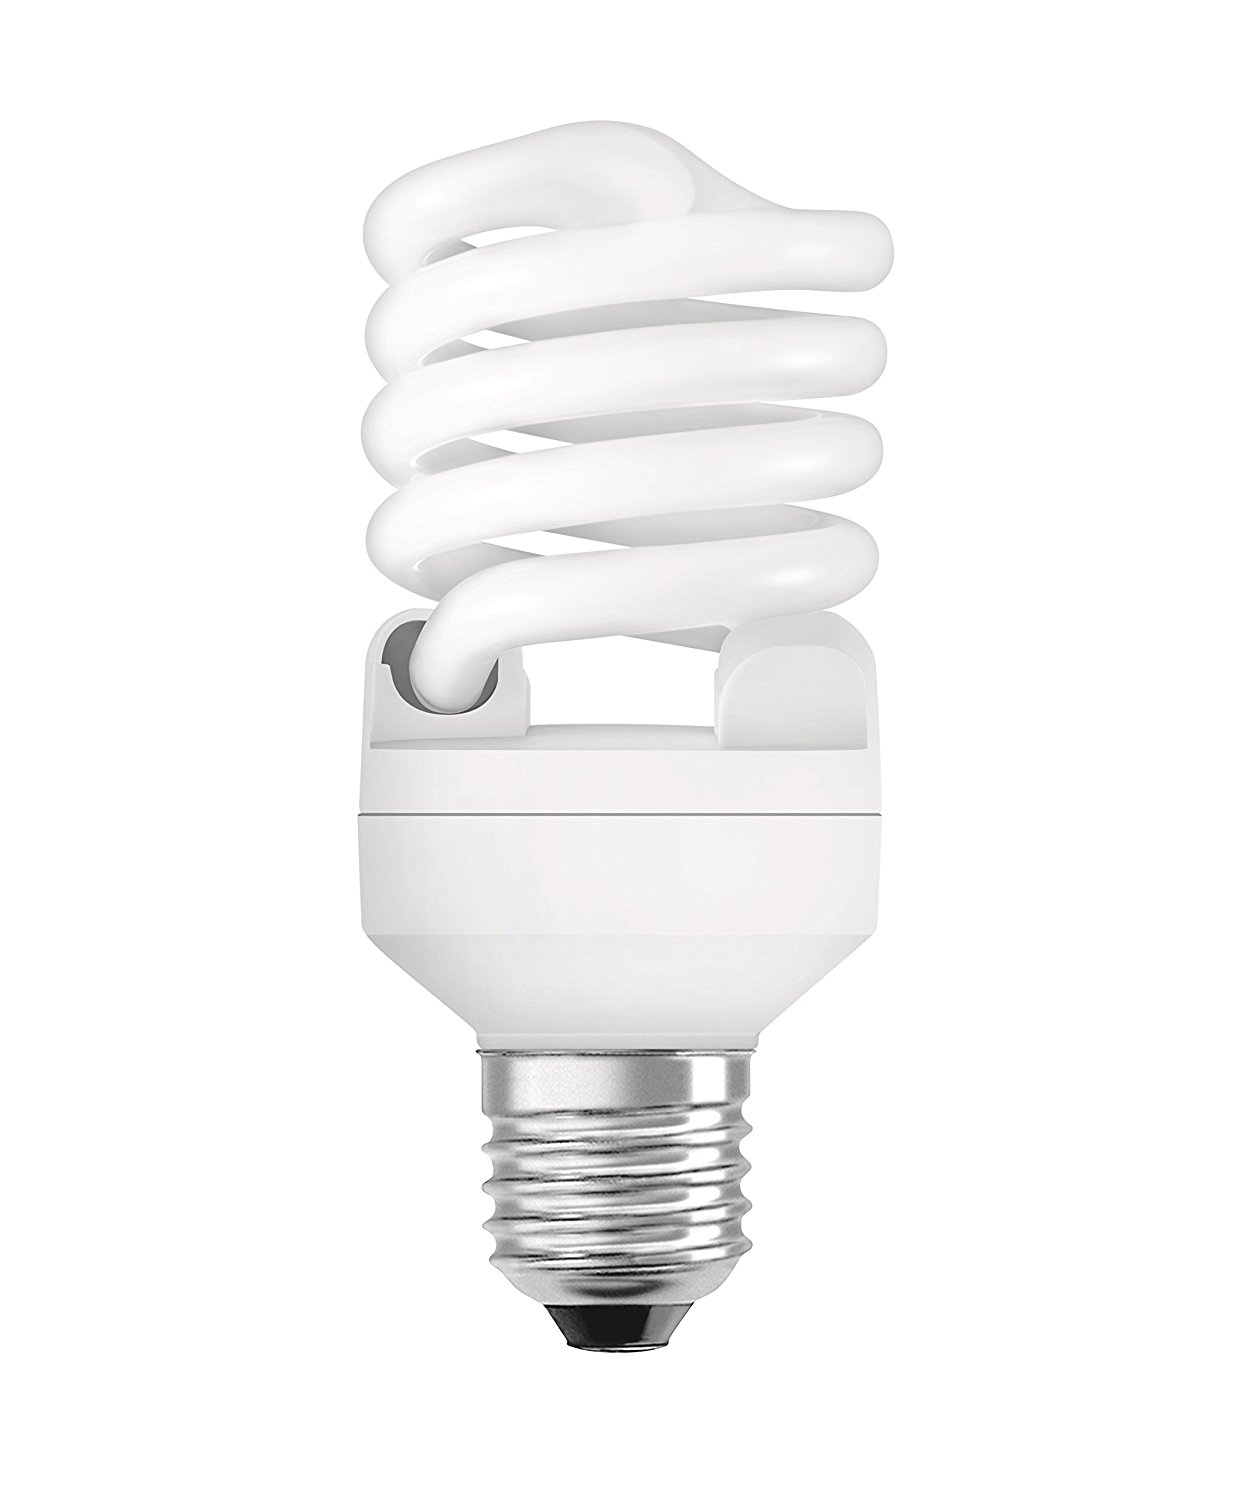 Osram E27 Edison Screw 23 Watt Compact Fluorescent Light Dulux Pro Mini  Twist Lamp: Amazon.co.uk: Lighting - Energy Efficient Light Bulbs PNG